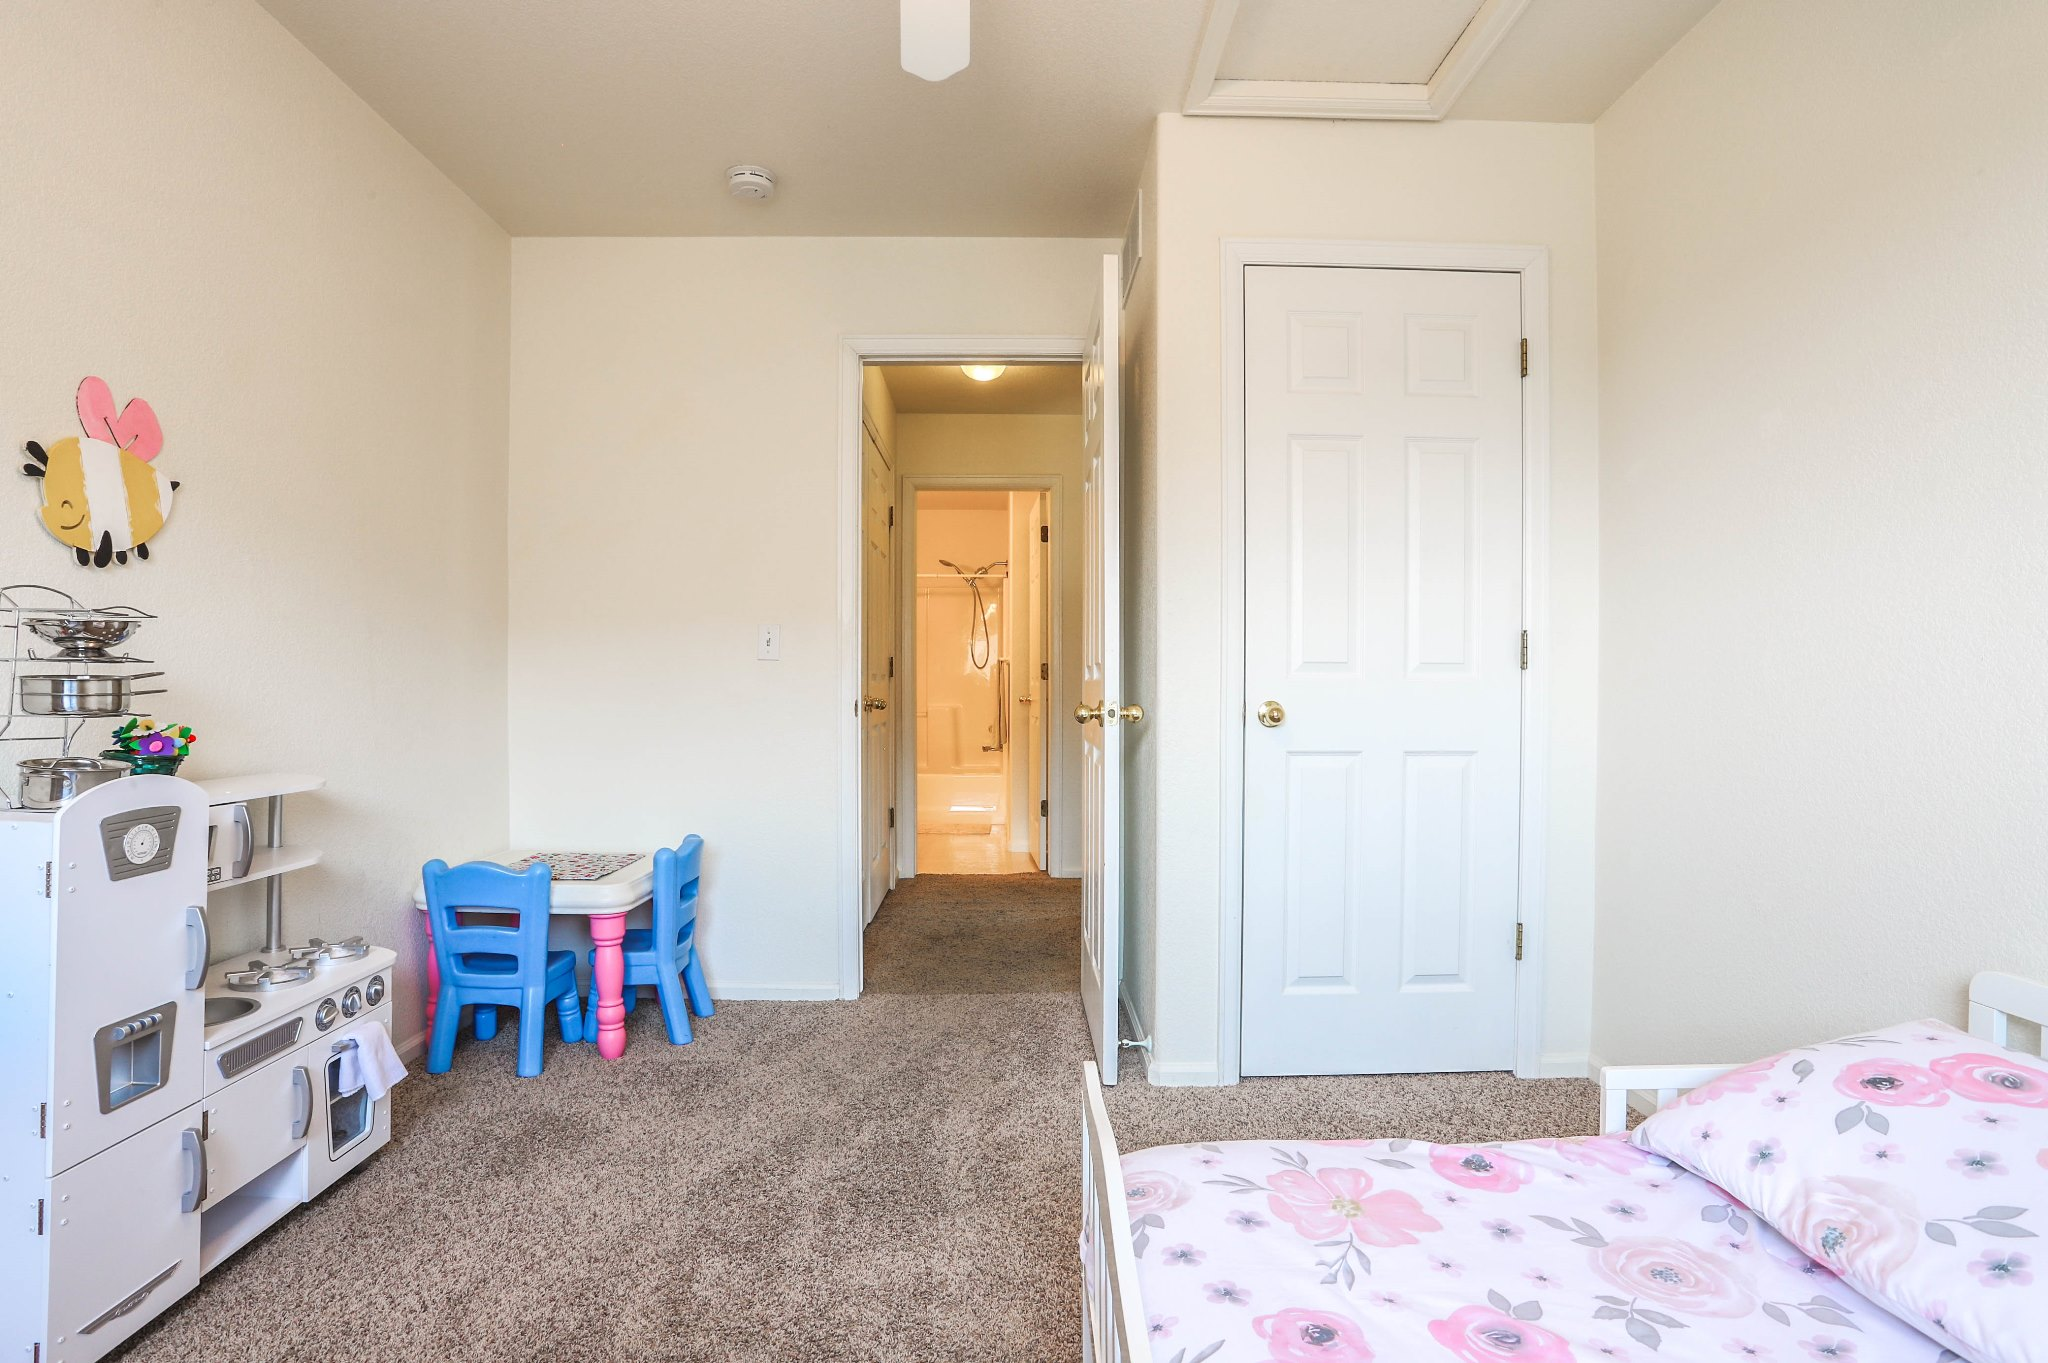 REAL ESTATE LISTING: 1601 Great Western Dr Longmont Bedroom 2